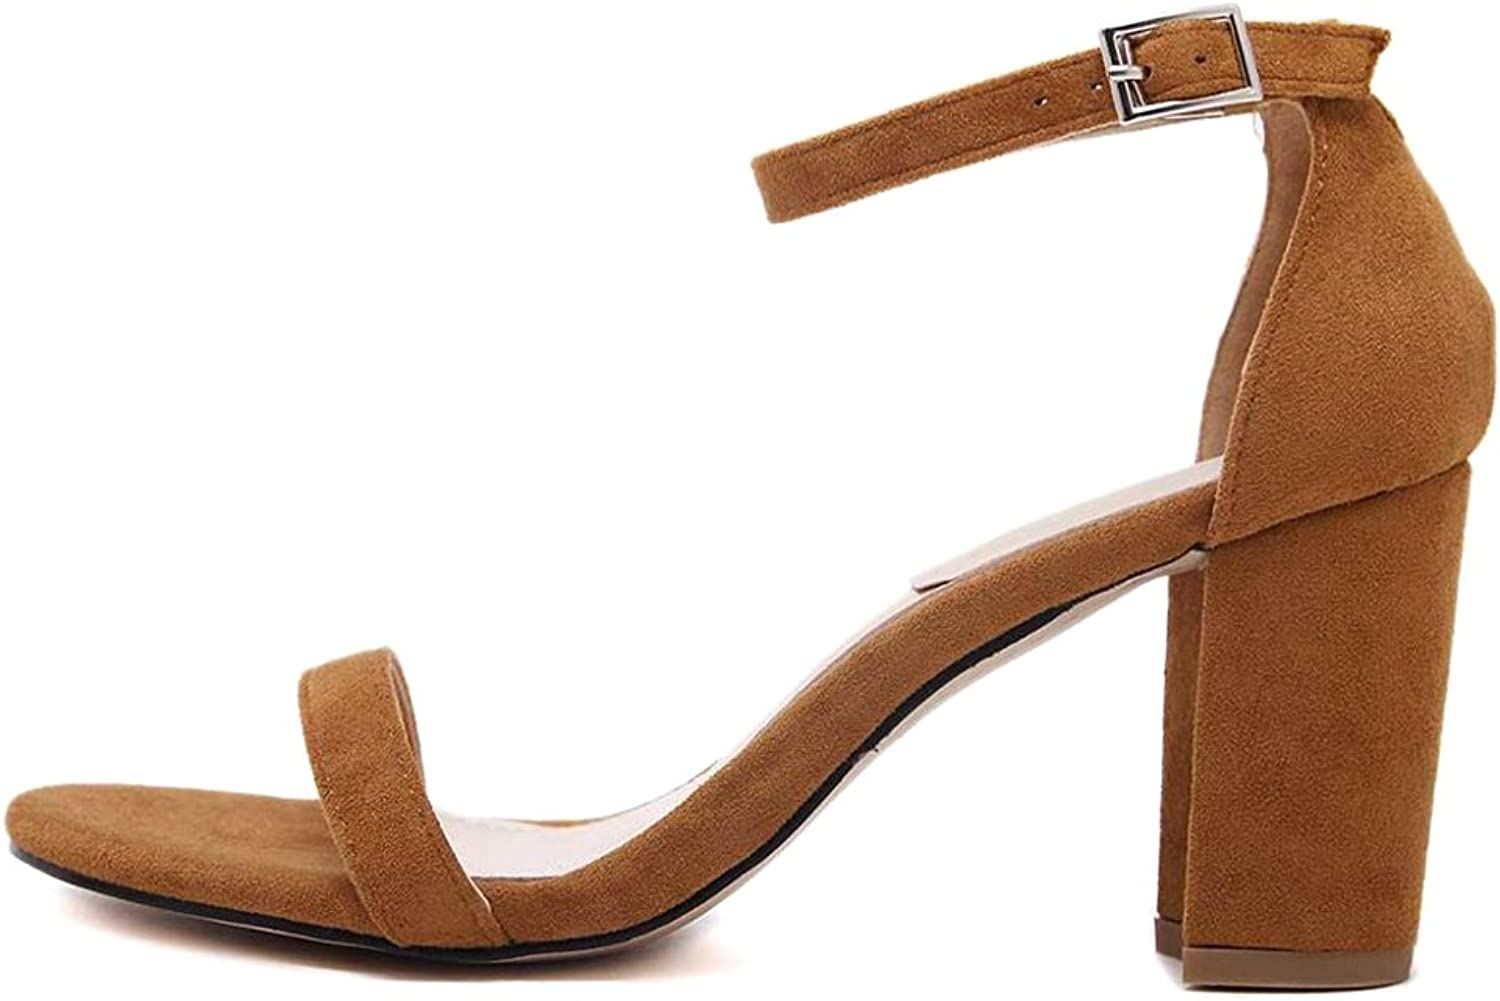 Womens Sandals Ankle Strap Chunky Square High Heels Open Toe Party Dress Sandal